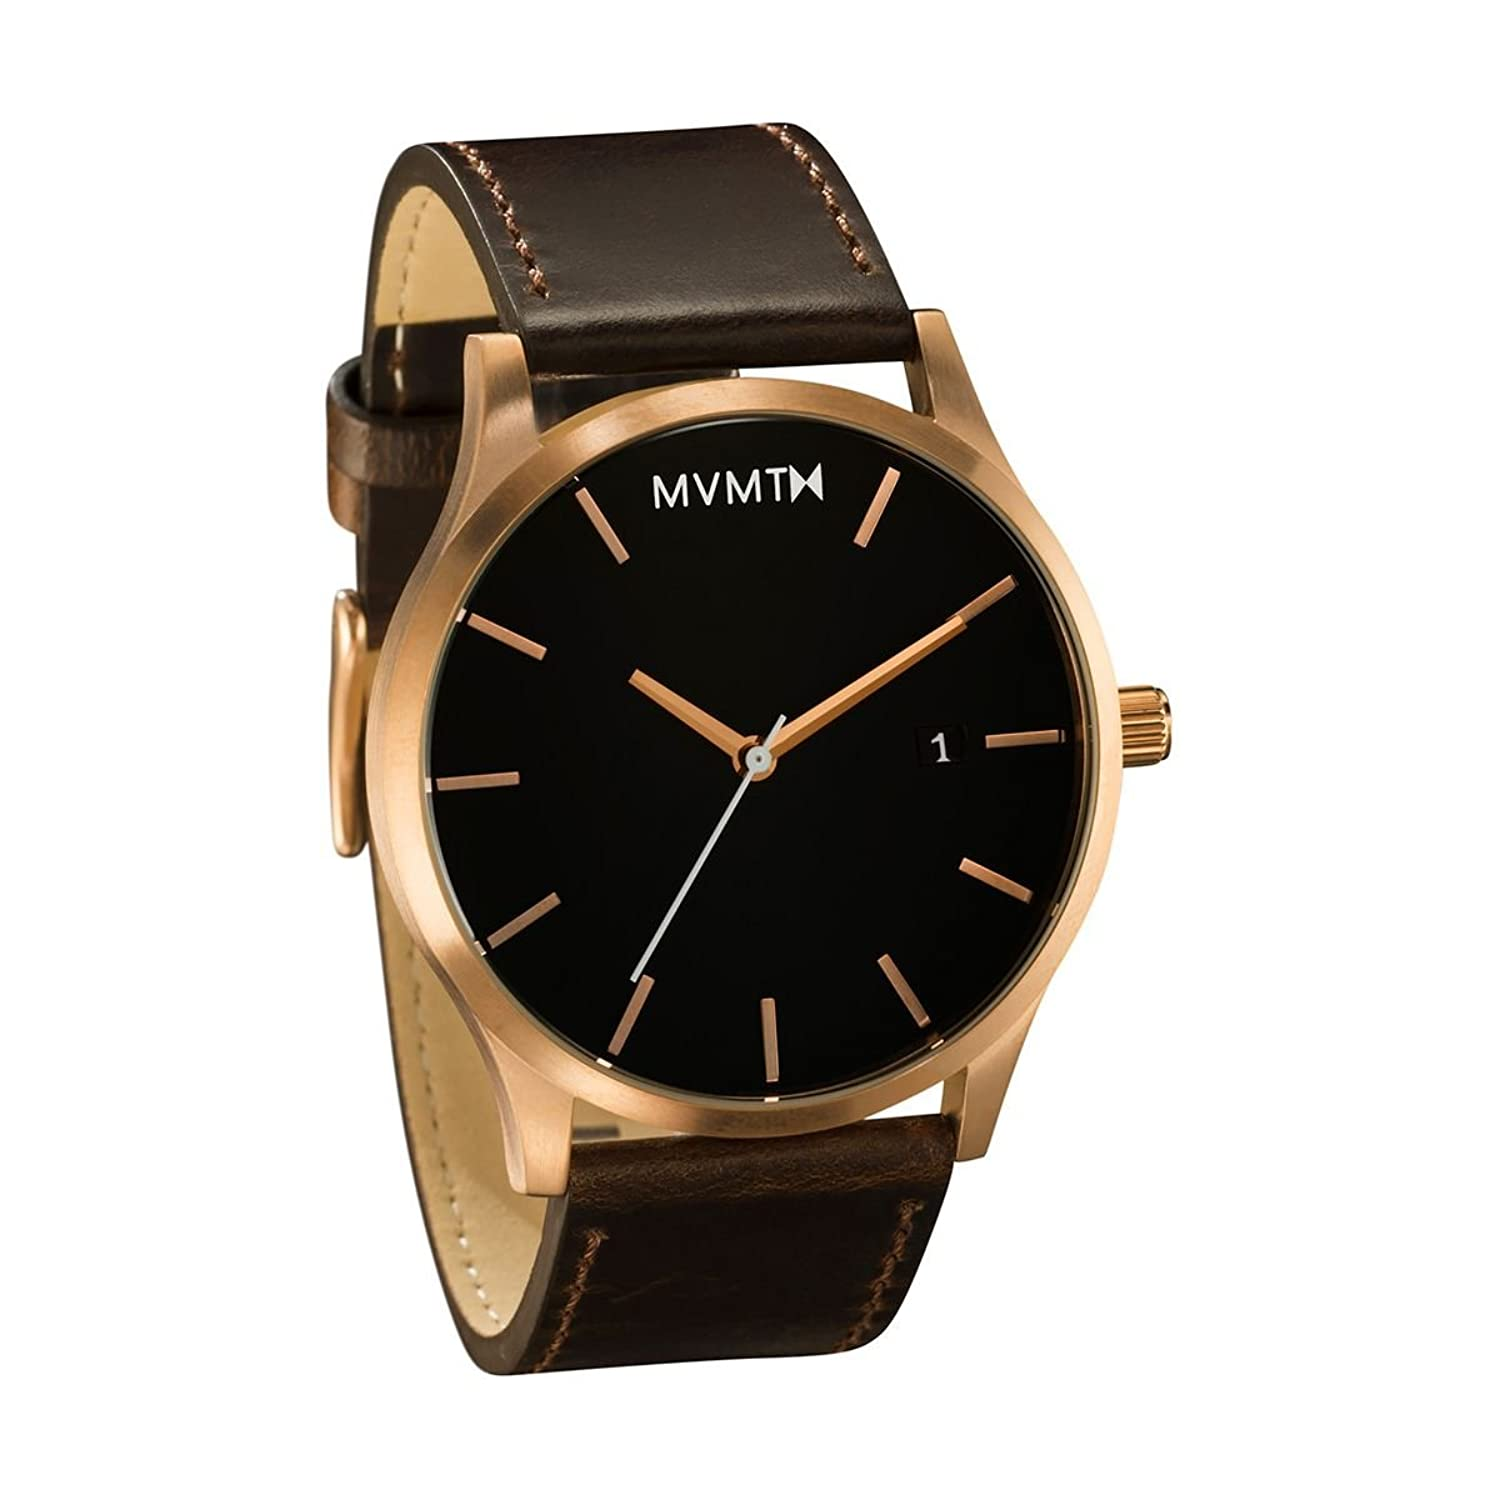 MVMT Herren Watch Uhr Rose Gold- Brown Leder Armband MM01RGL